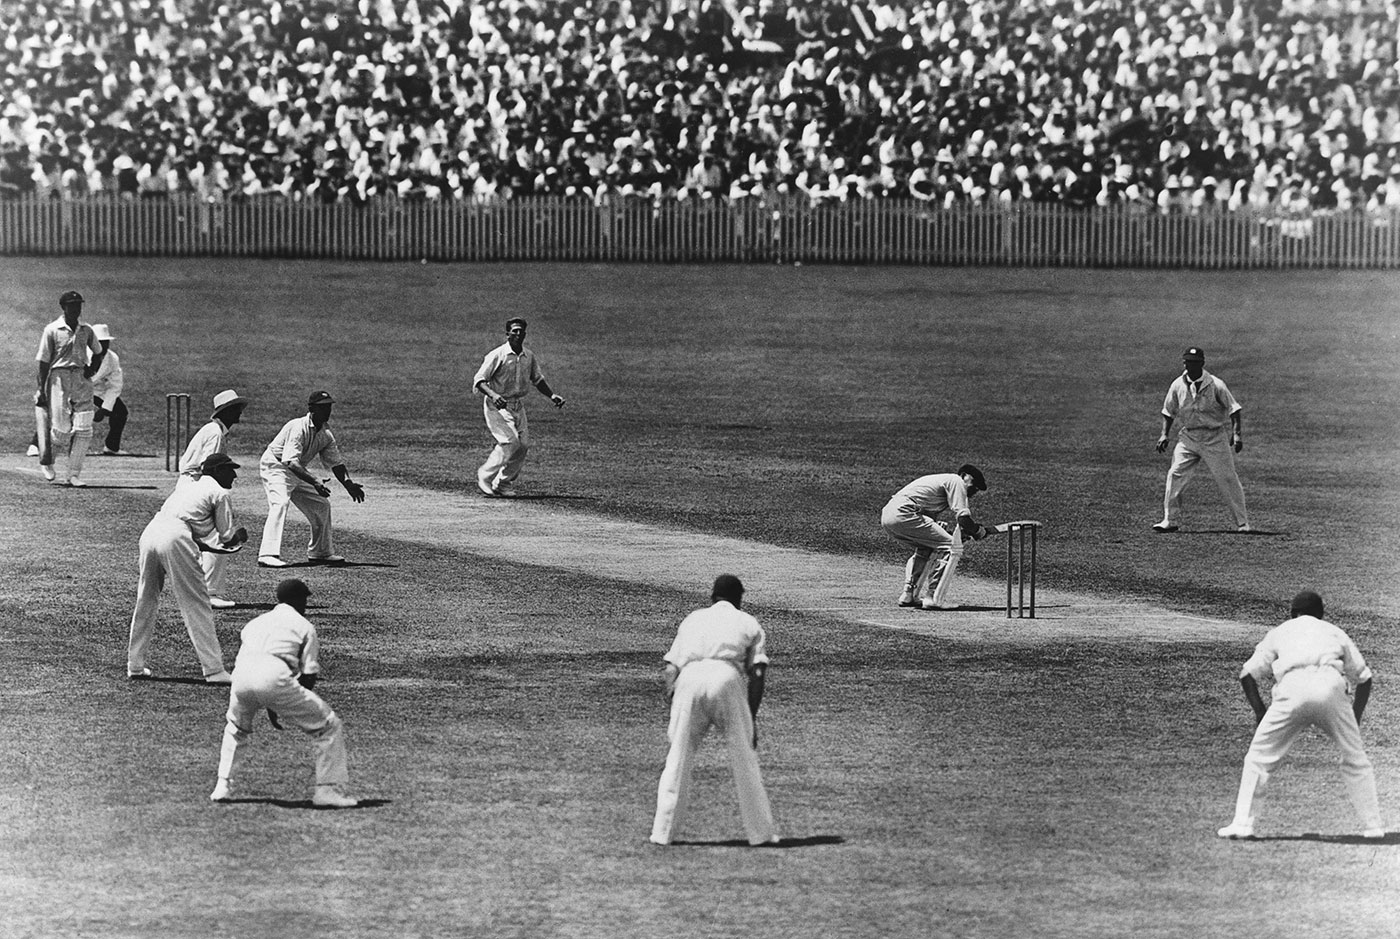 Bill Woodfull ducks a ball from Harold Larwood in a classic image from the Bodyline series, Australia v England, 3rd Test, Adelaide, January 16, 1933